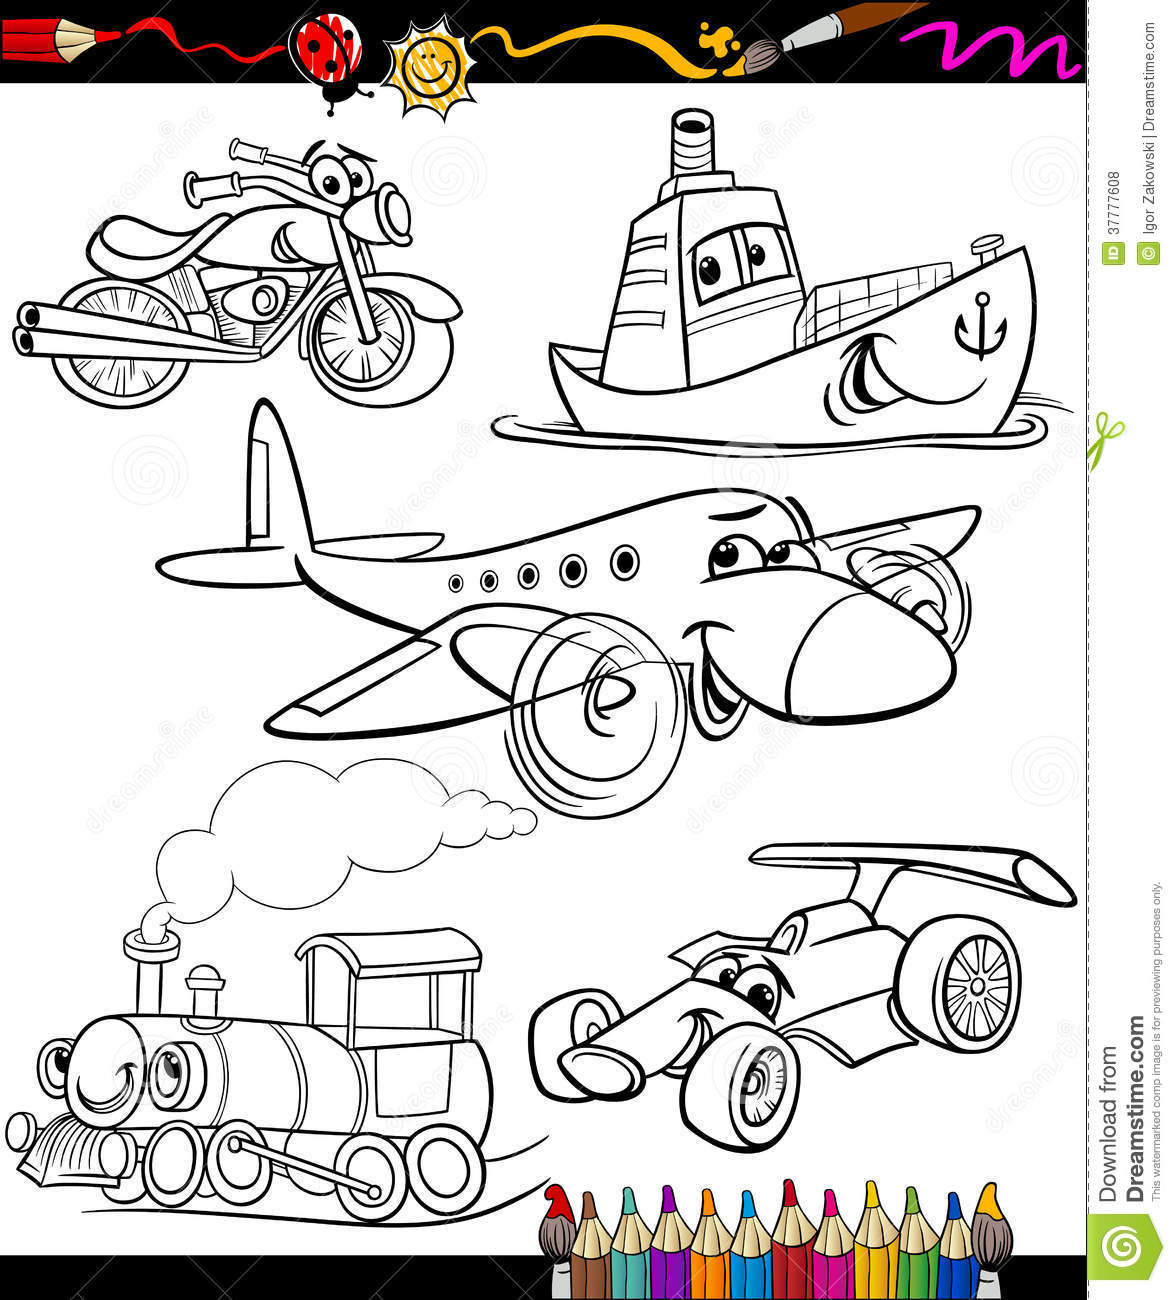 transport set for coloring book royalty free stock photos image